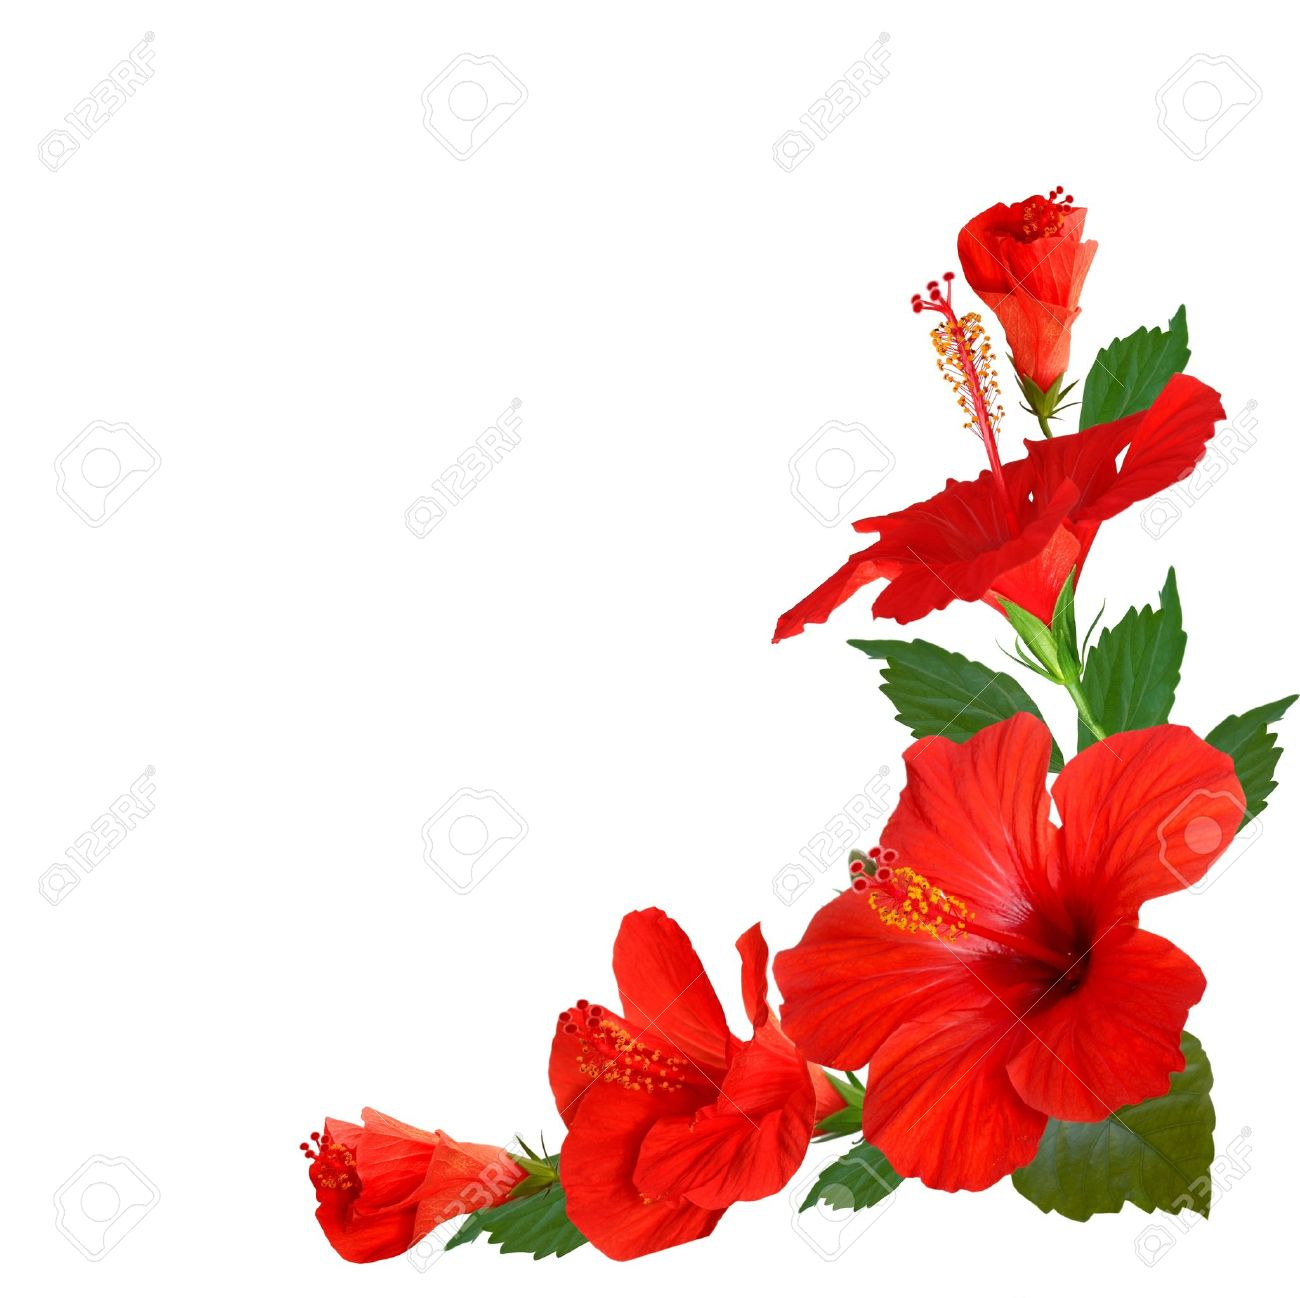 hibiscus flowers stock photo, picture and royalty free image, Beautiful flower